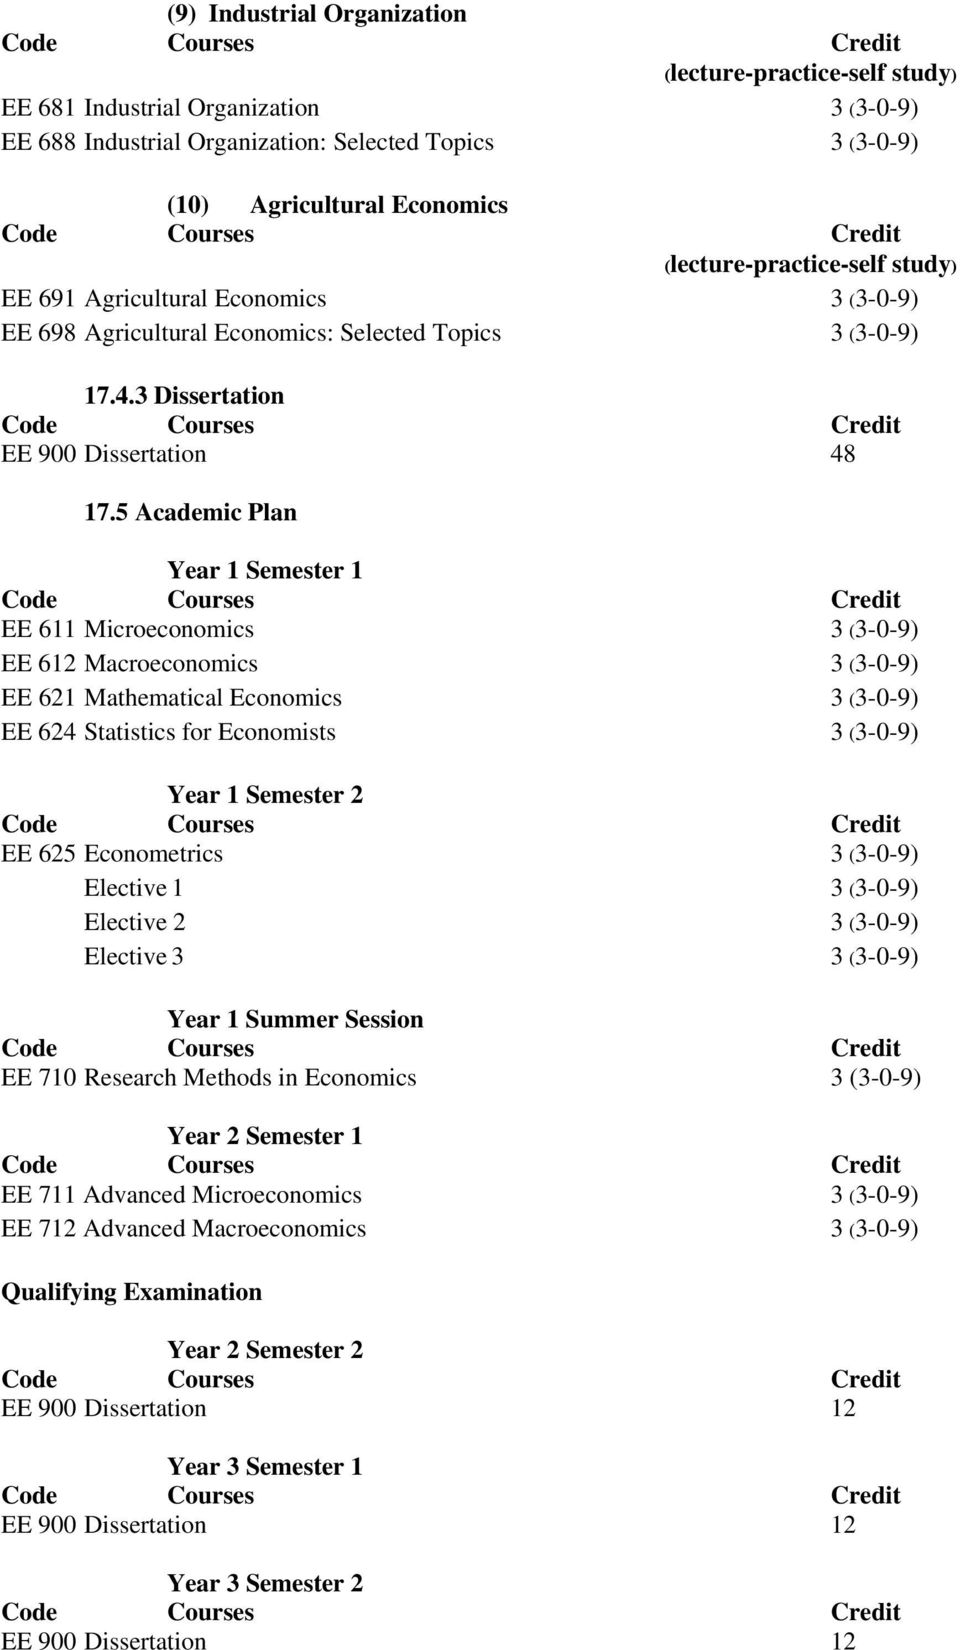 5 Academic Plan Year 1 Semester 1 EE 611 Microeconomics 3 (3-0-9) EE 612 Macroeconomics 3 (3-0-9) EE 621 Mathematical Economics 3 (3-0-9) EE 624 Statistics for Economists 3 (3-0-9) Year 1 Semester 2